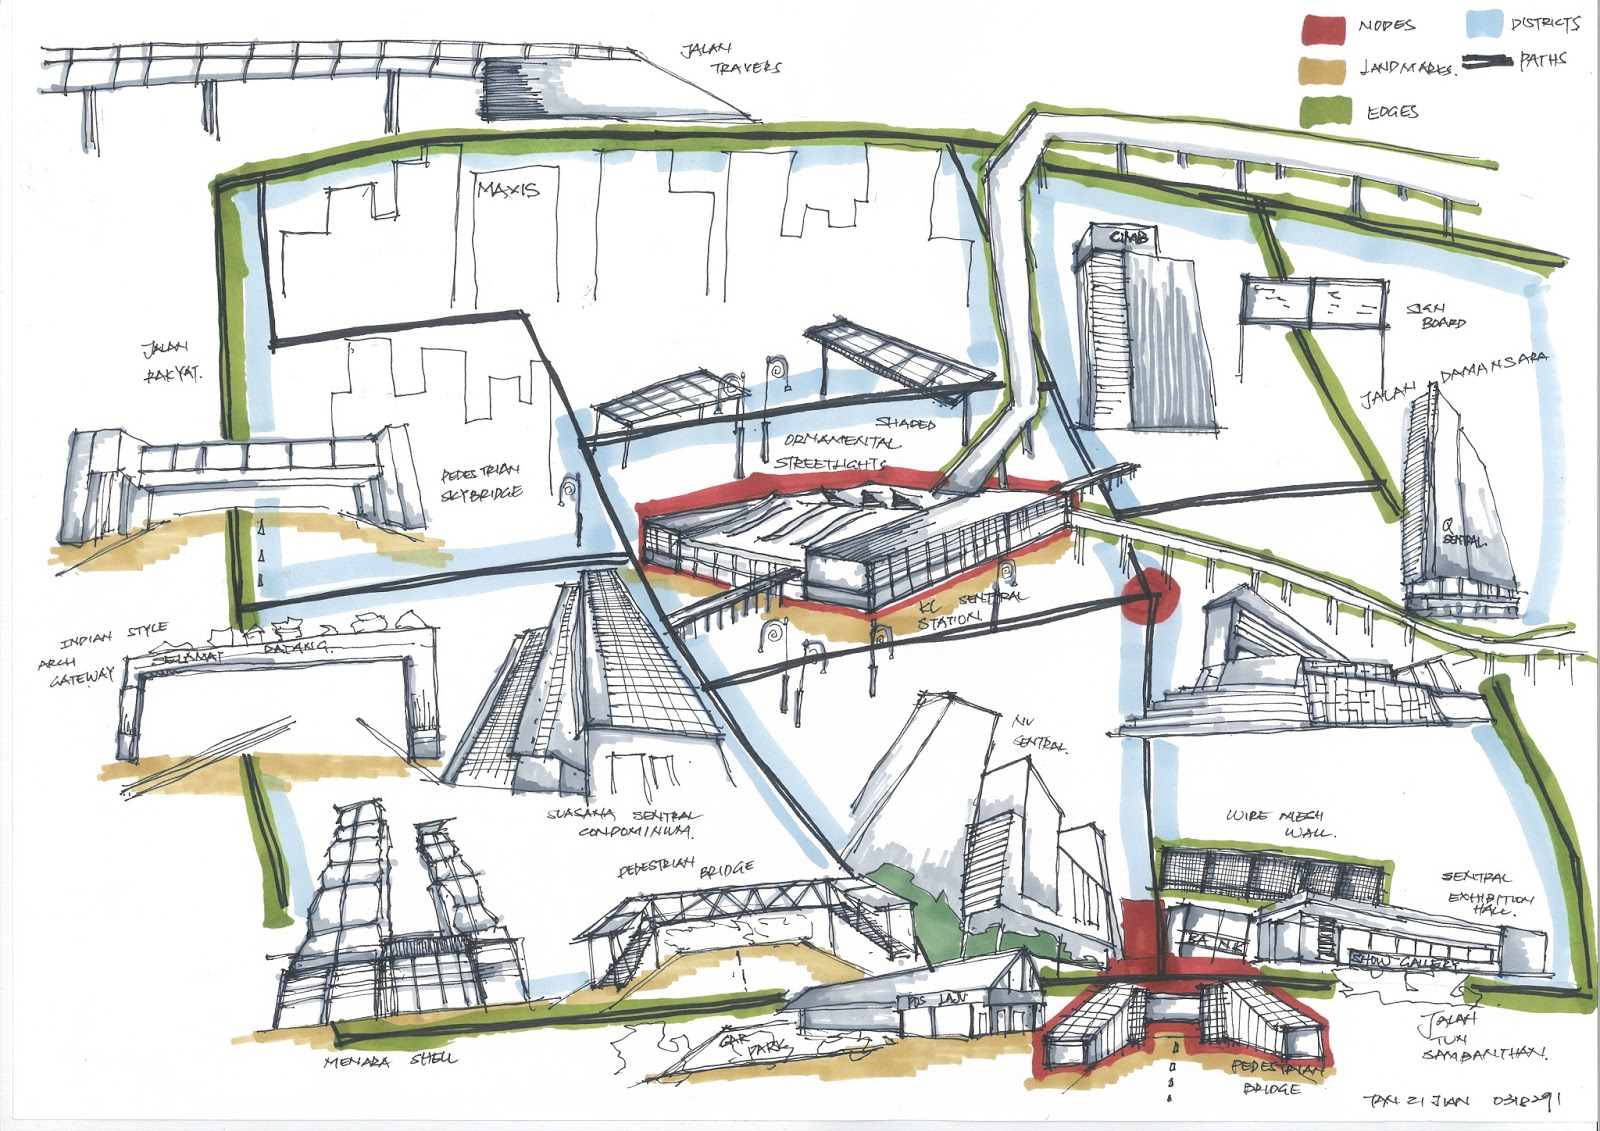 theories of architecture urbanism cognitive mapping